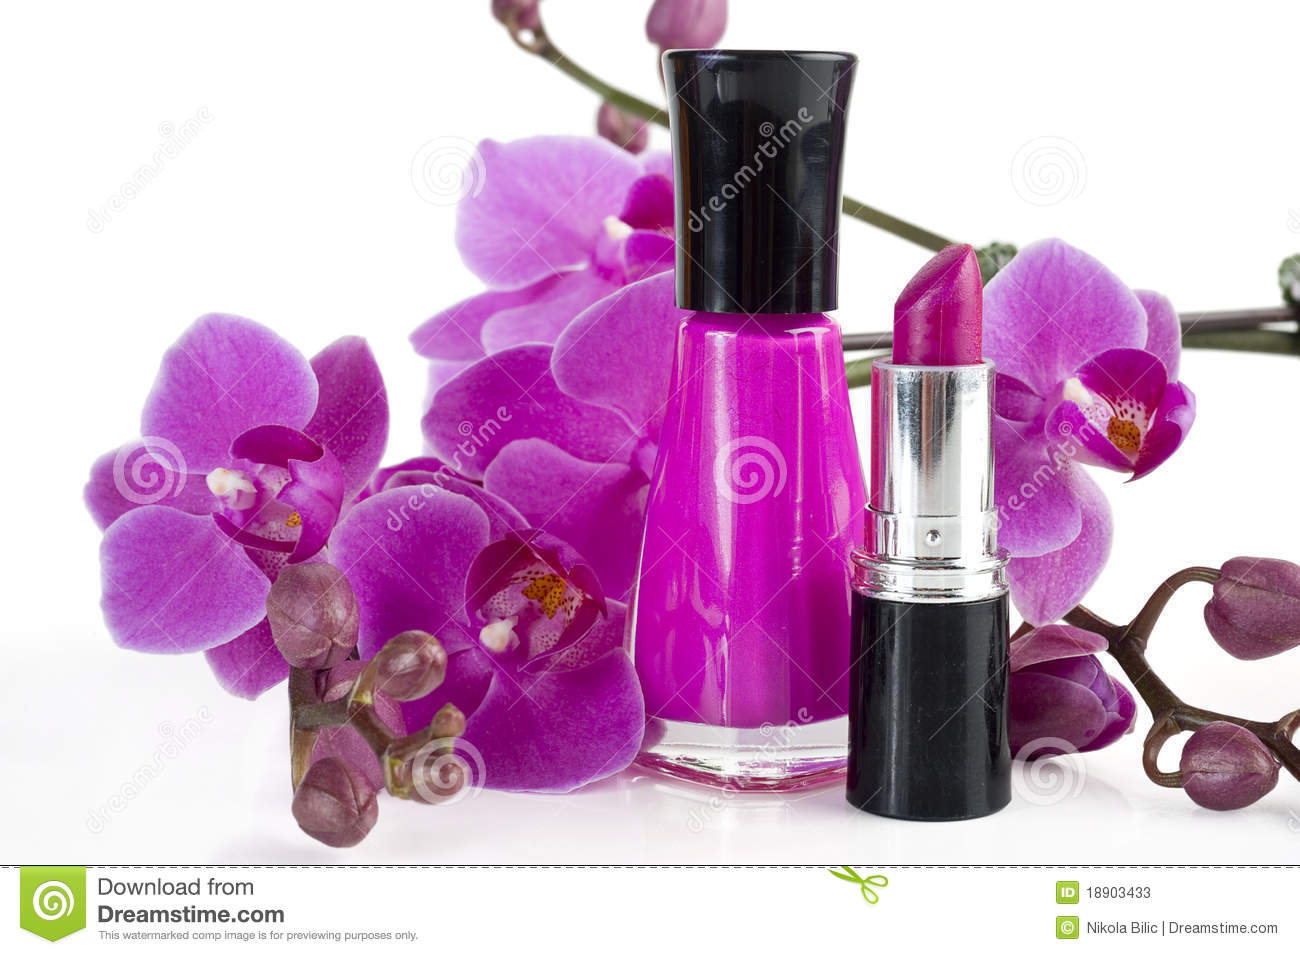 #3 DIY Lipstick: How to Make Nail Polish Lipstick July 14, July 14, Guru Crafts, DIY Girls perpetually have a hunger for more and more cosmetics, whether it is an eyeliner or face powder, and their obsession become wider when it comes to the matter of lipsticks!